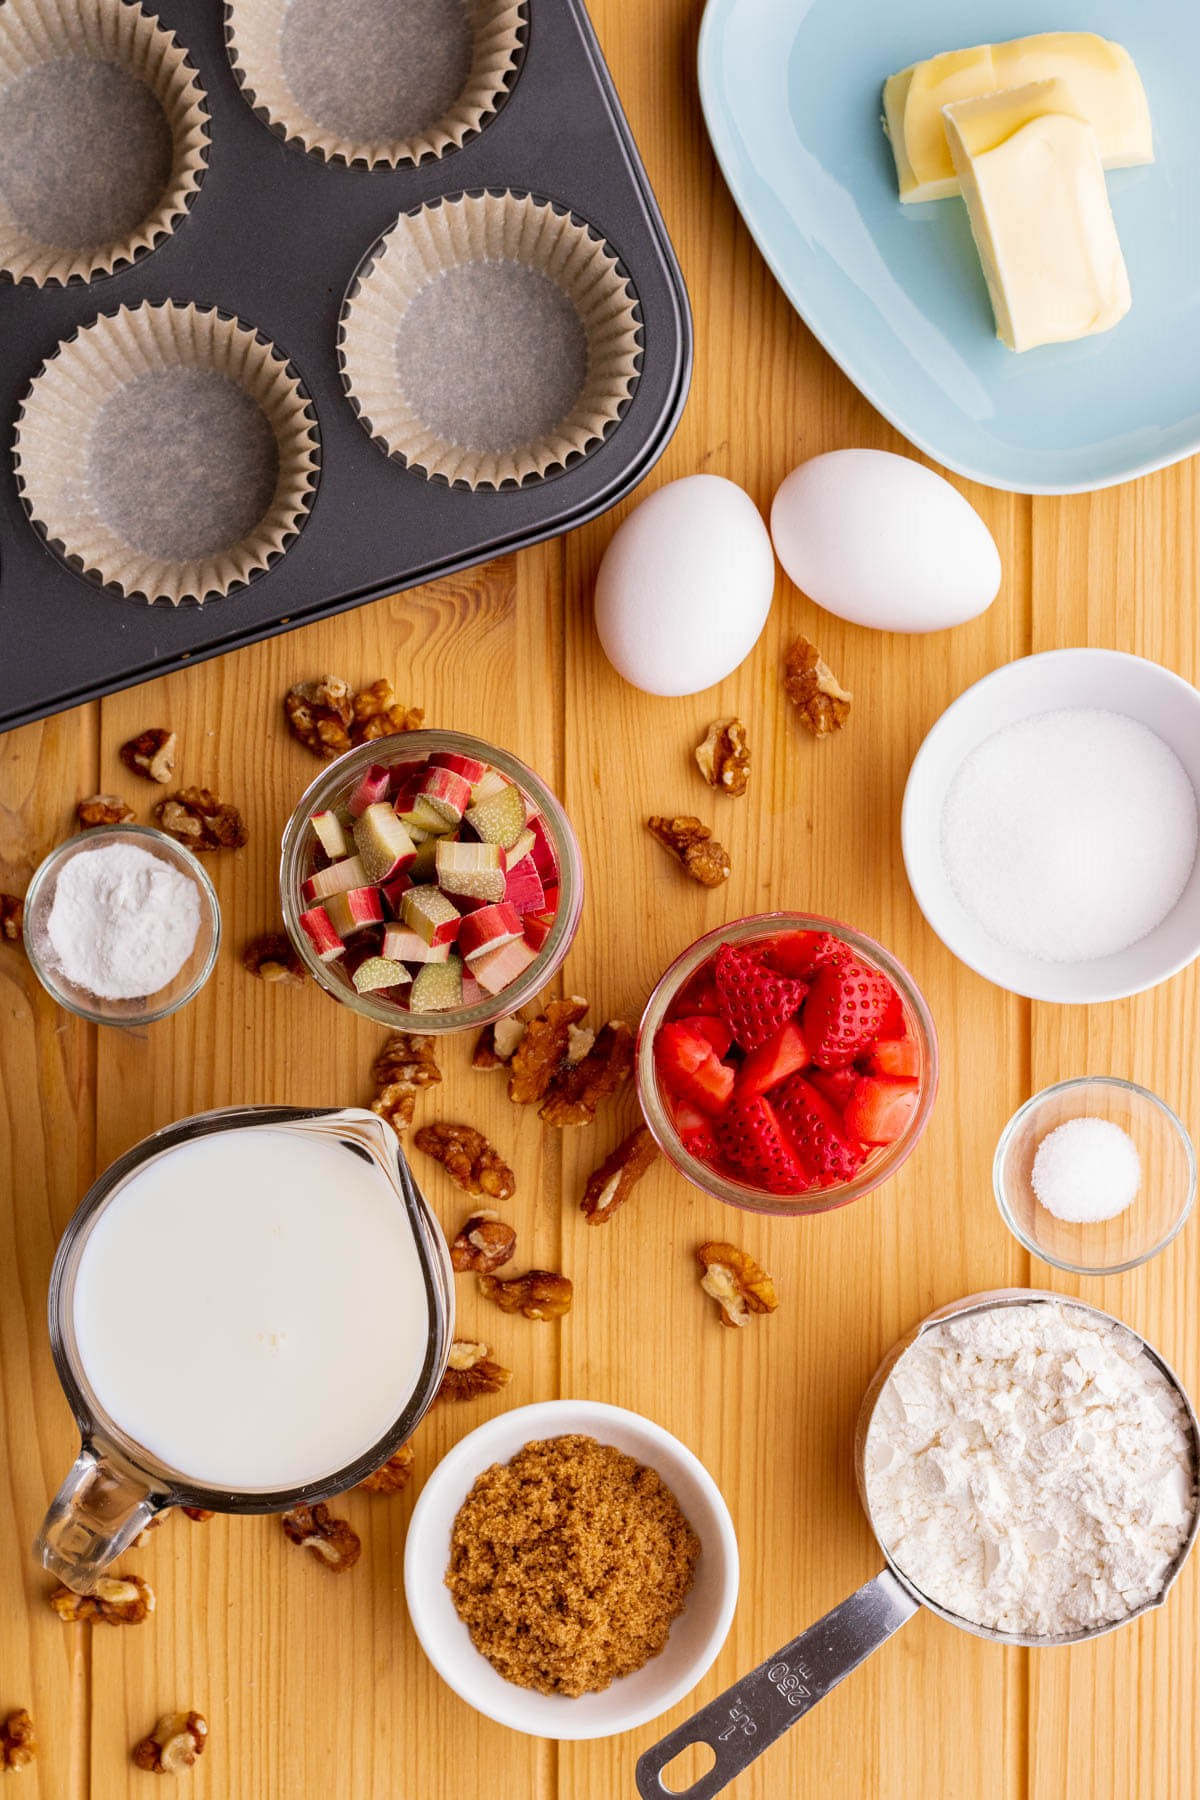 Ingredients used in making strawberry rhubarb muffins with streusel topping.